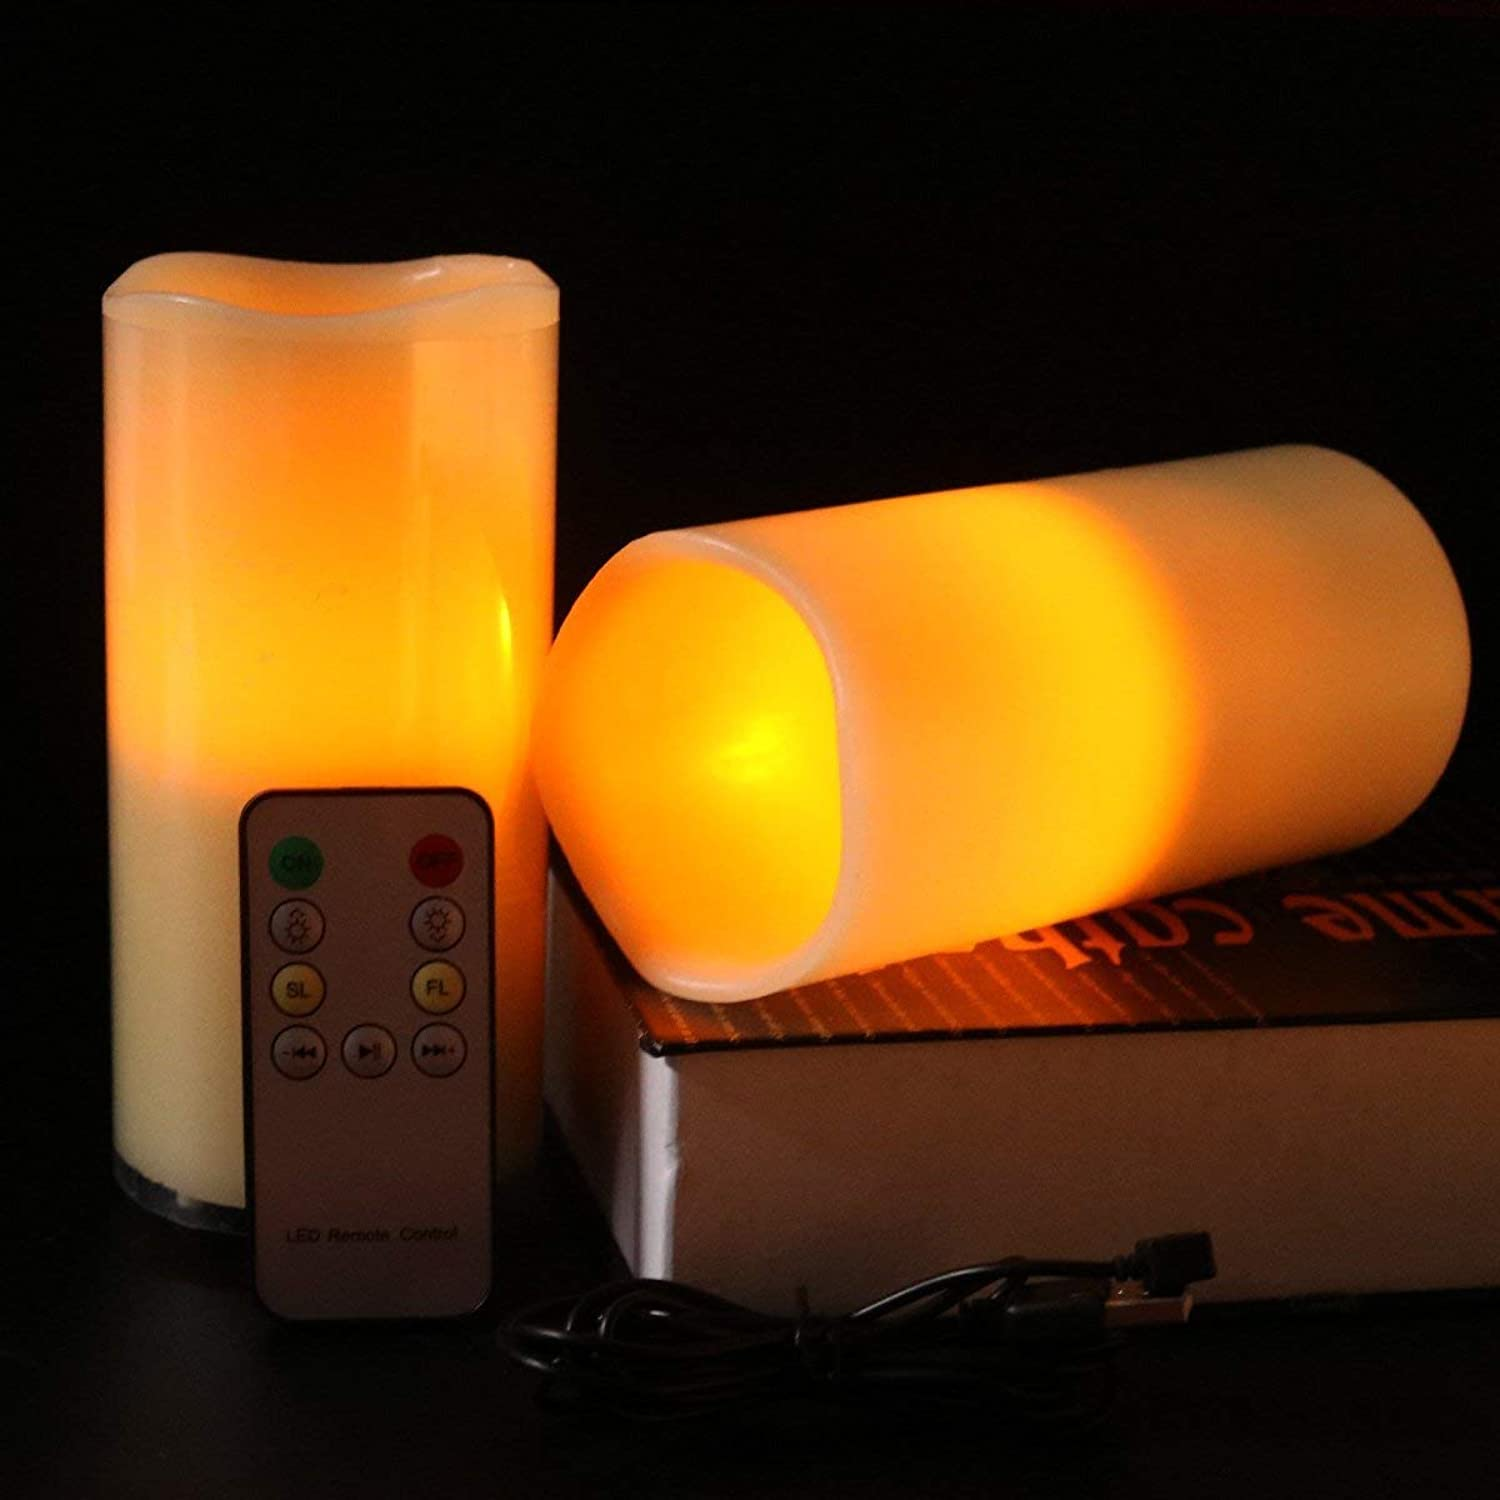 ADAHX LED Kerzenlicht, USB Charging Candle, Blautooth Music Paraffin Candle Light for Wedding Birthday Kirchen Party Decorations,Gelb,7.5X14.2cm